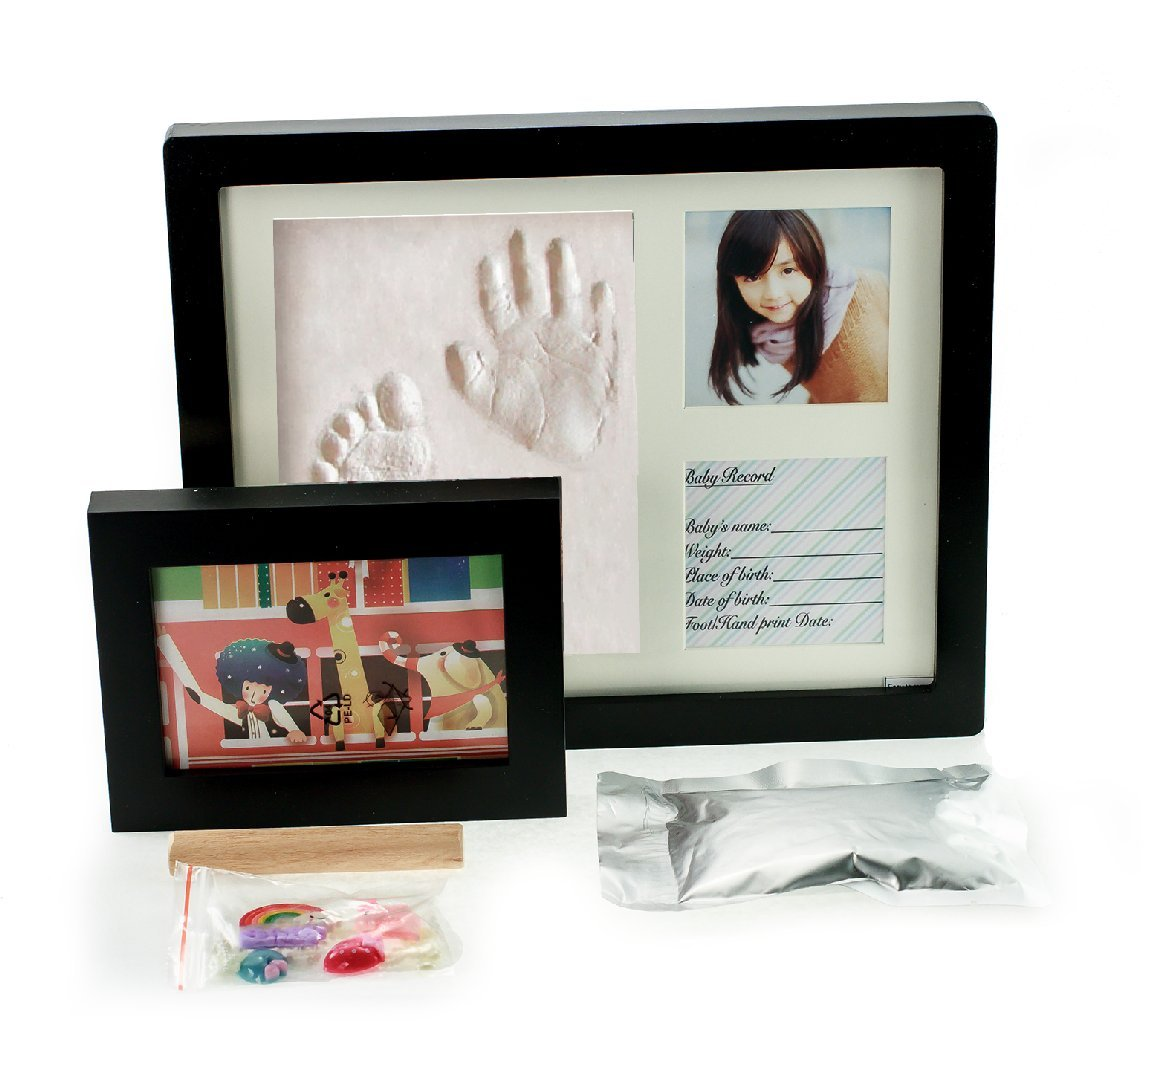 Amazon baby handprint kit footprint photo frame for newborn amazon baby handprint kit footprint photo frame for newborn girls and boys personalized baby gifts keepsake box decorations for room wall nursery negle Image collections